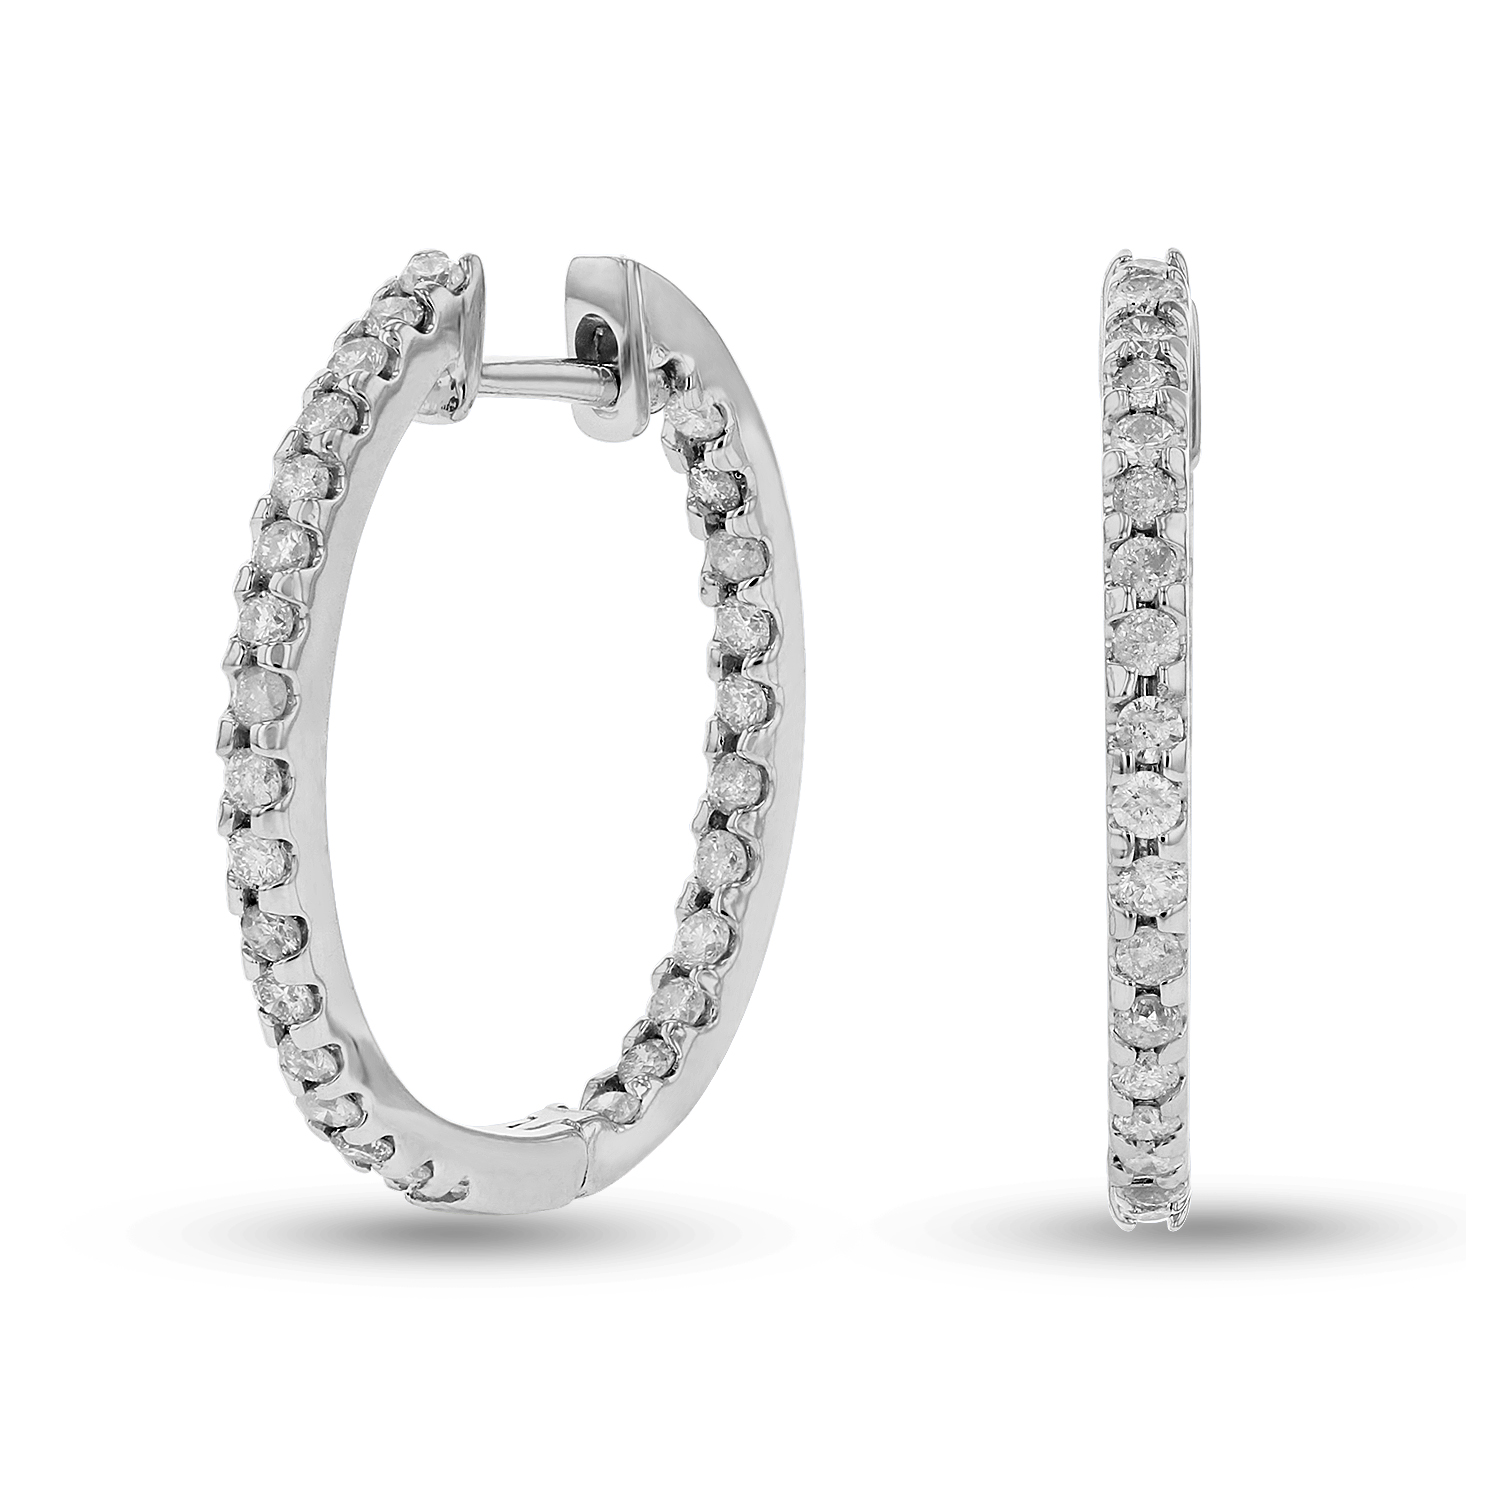 View 0.70ctw Diamond Hoop Earrings in 14k Gold